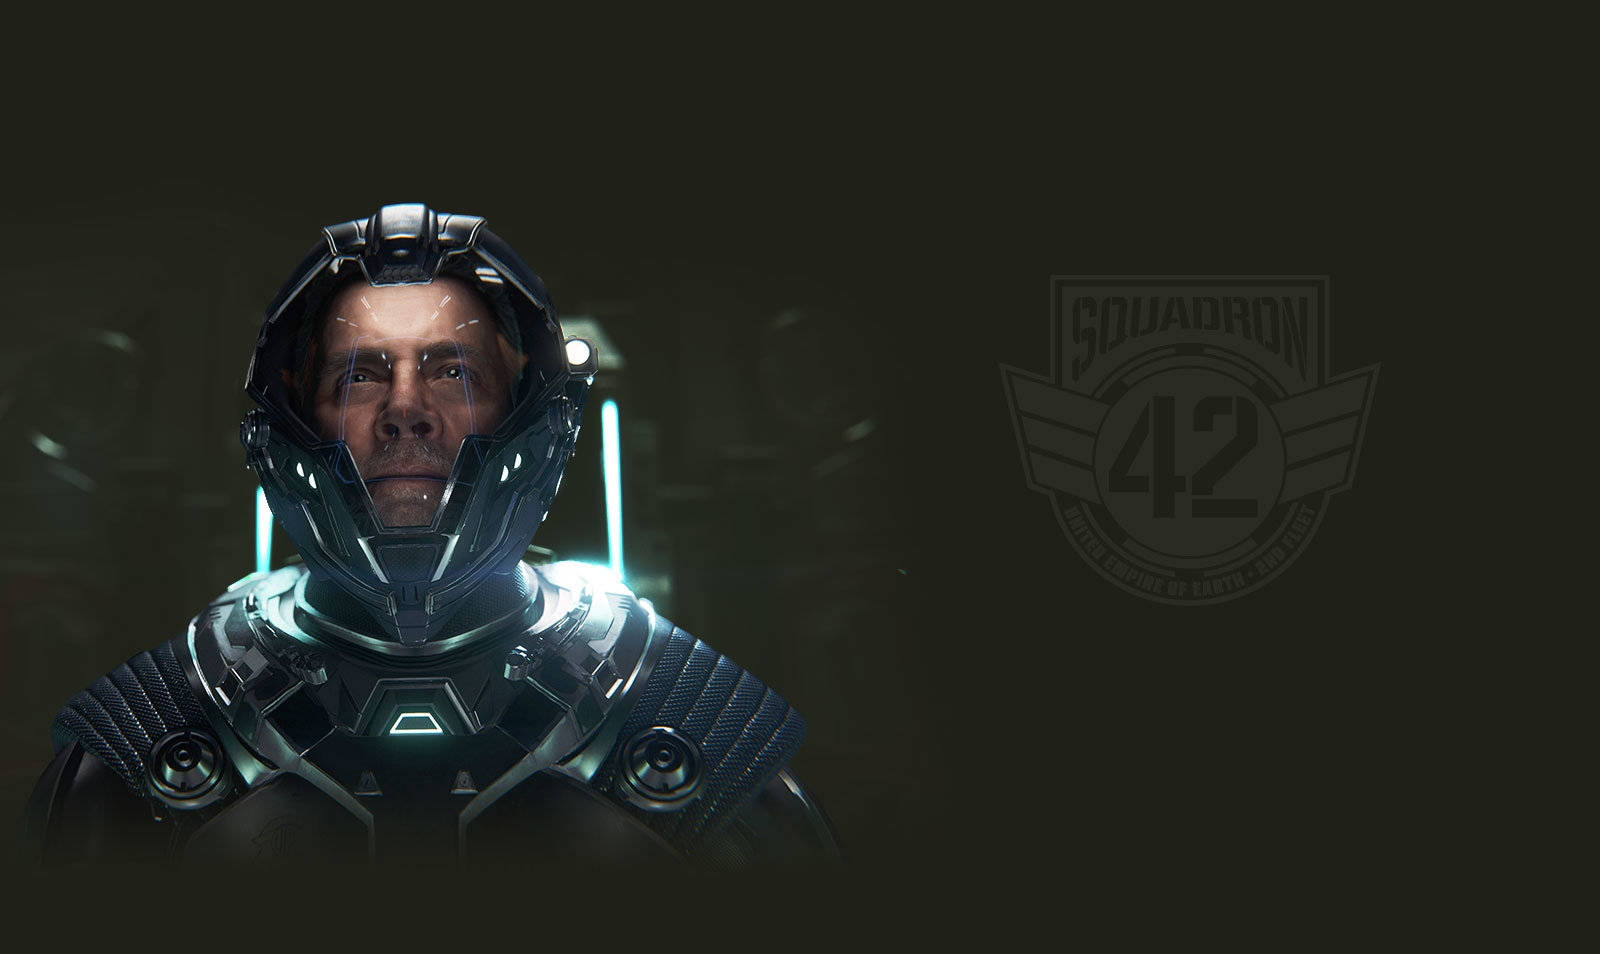 'Squadron 42' developers targeting 2020 for alpha, beta releases   DeviceDaily.com